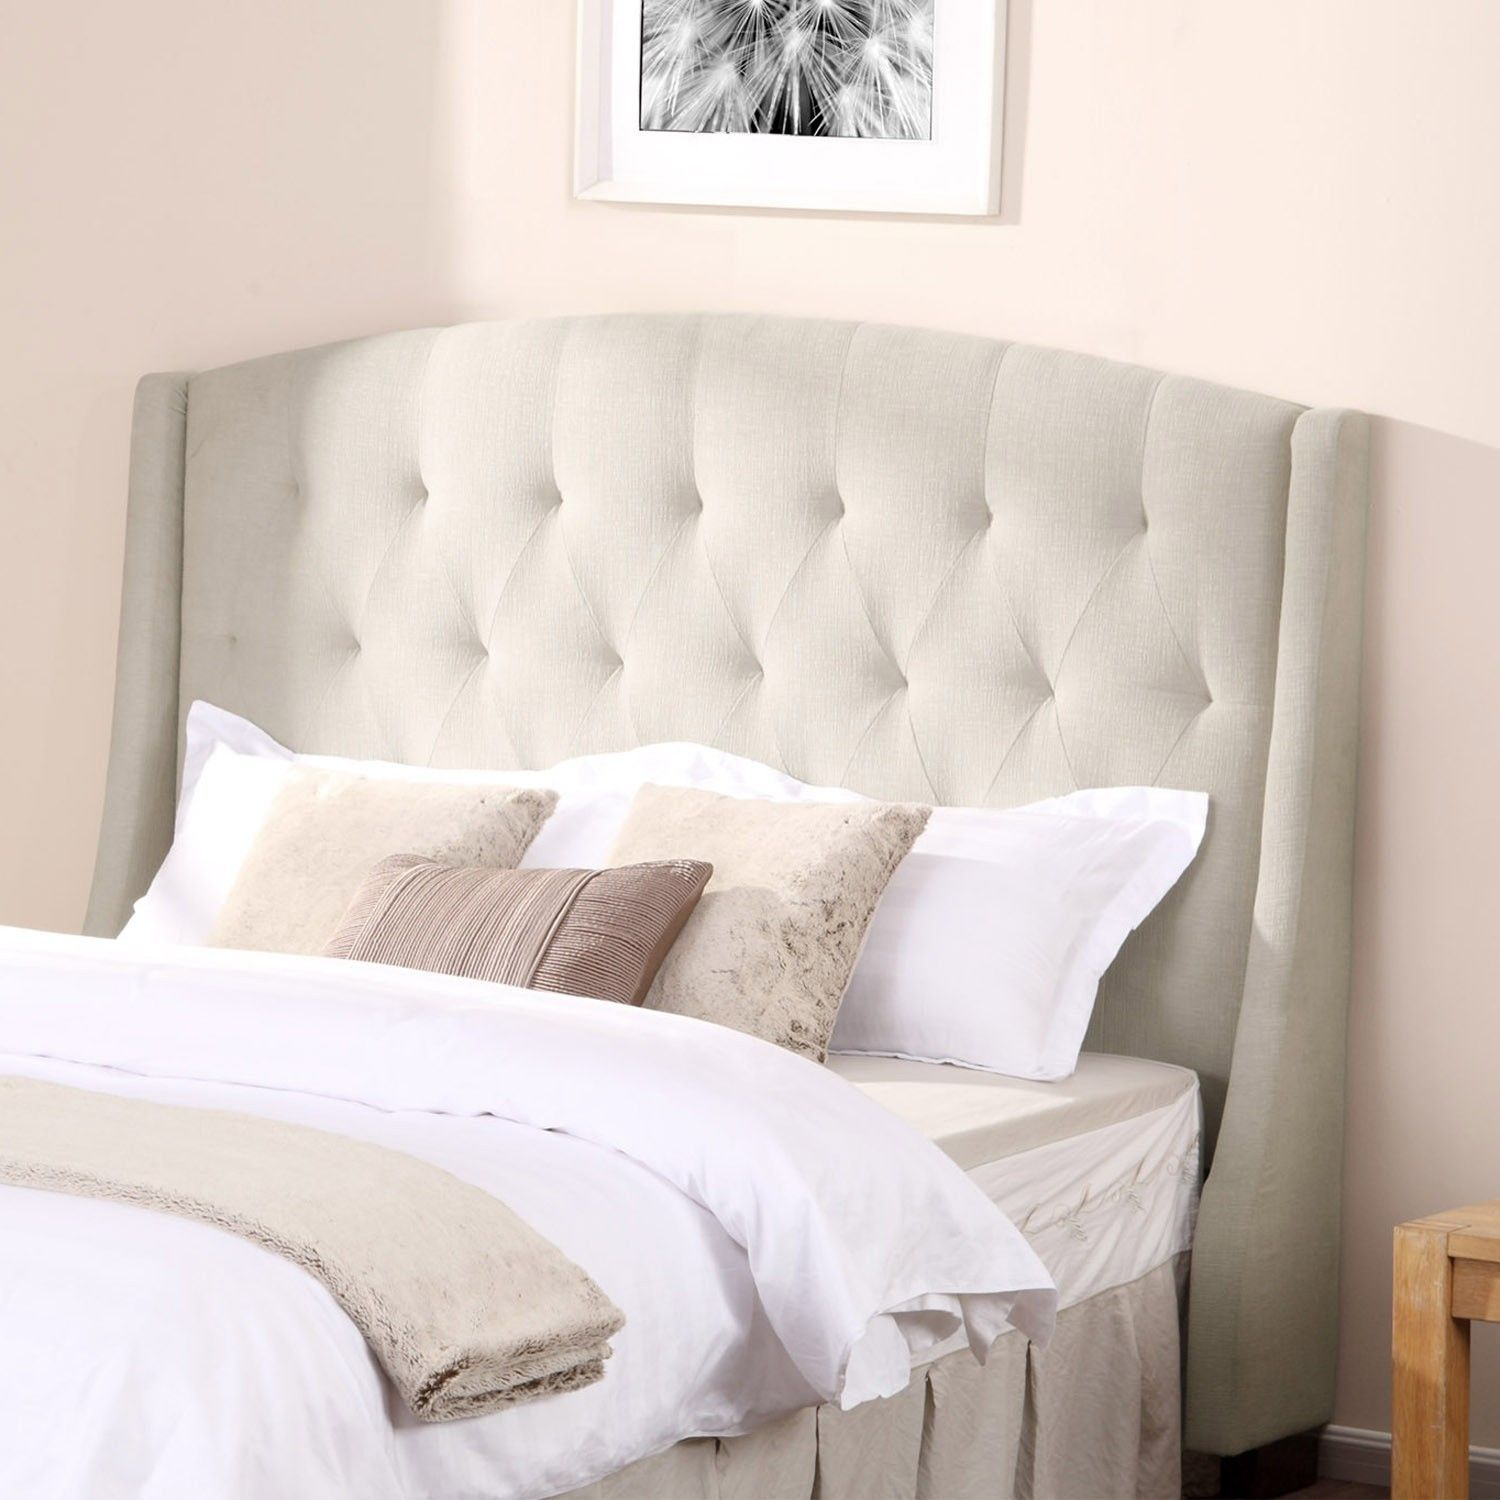 Outstanding Diy Headboard Ideas To Spice Up Your Bedroom #Headboard